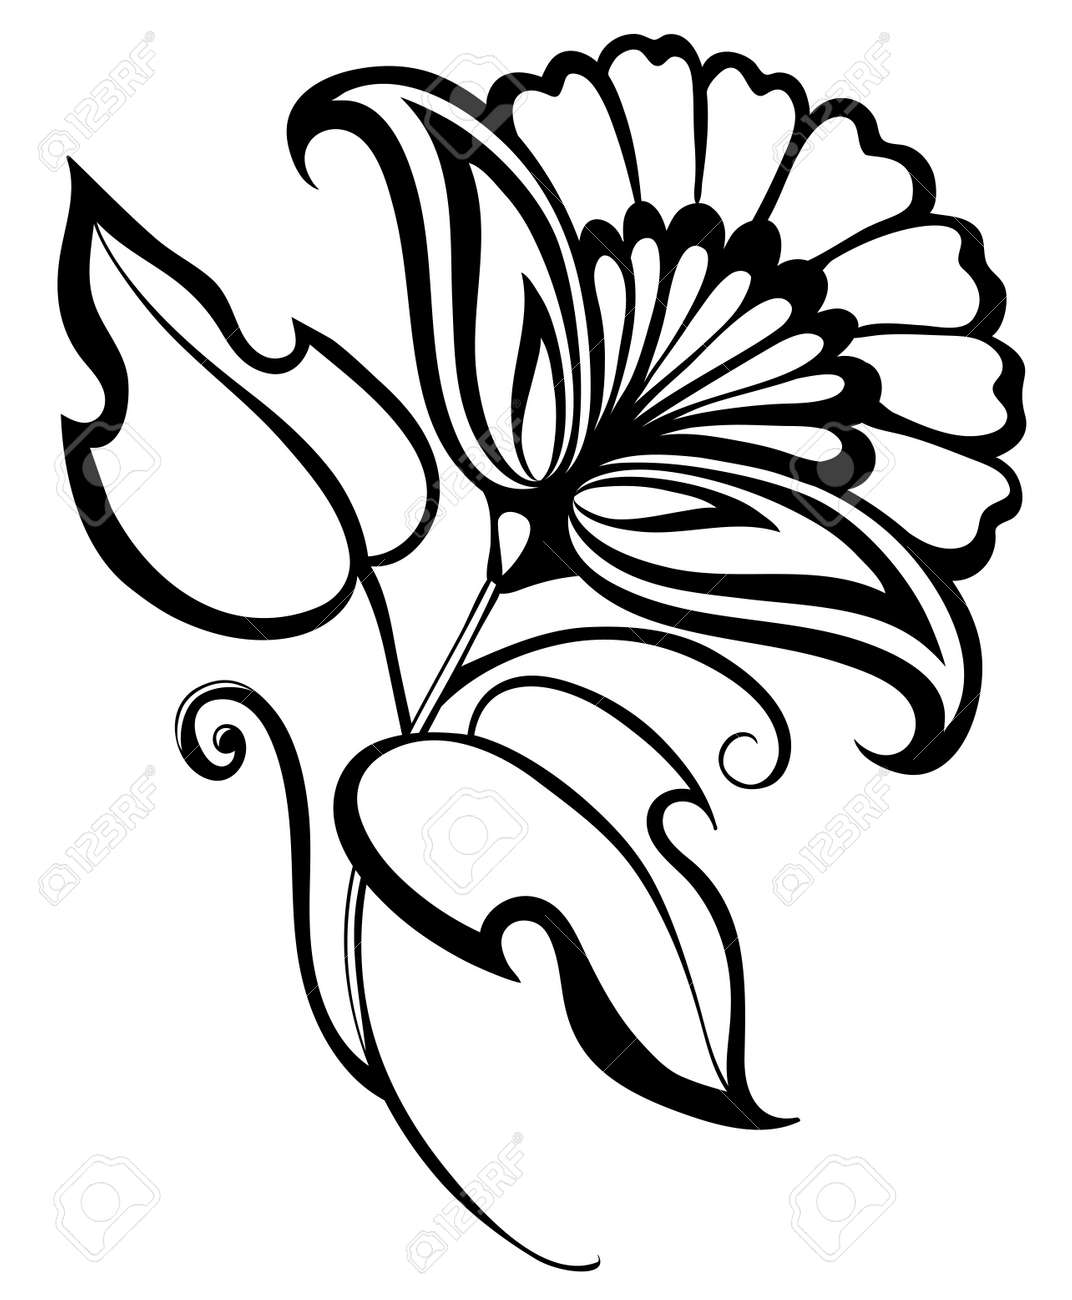 beautiful black and white flower, hand drawing  Floral design element in retro style Stock Vector - 18333294